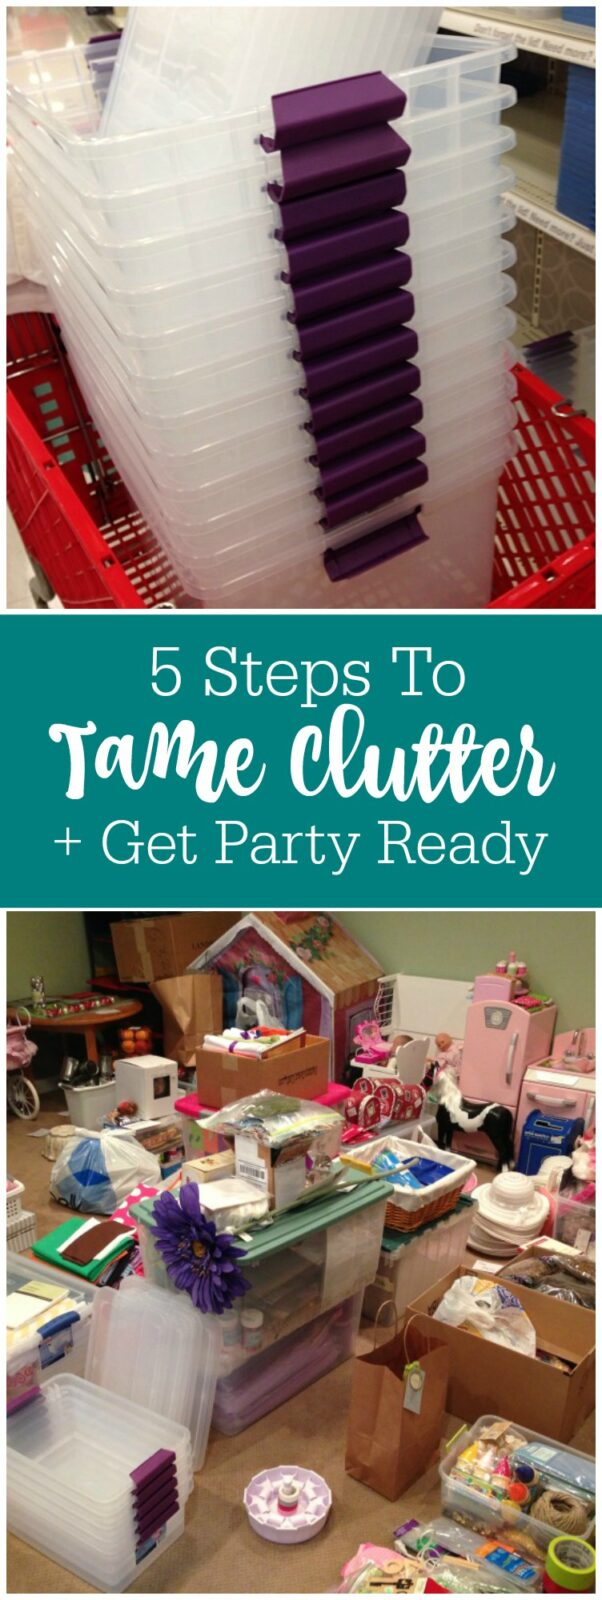 5 steps to tame clutter and get party ready by The Party Teacher